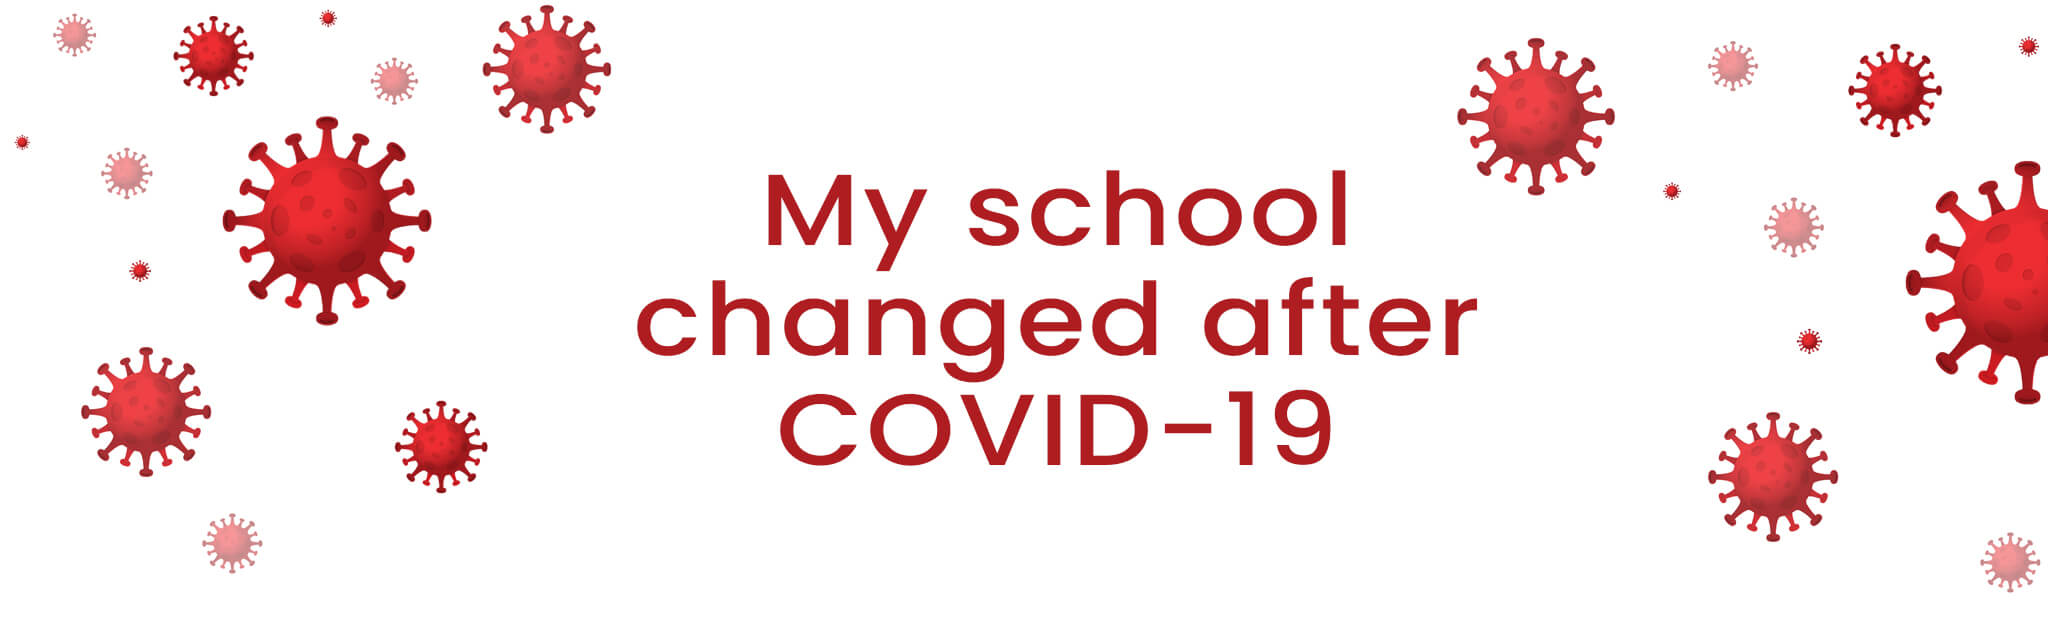 Download Social Story: My school changed after COVID-19